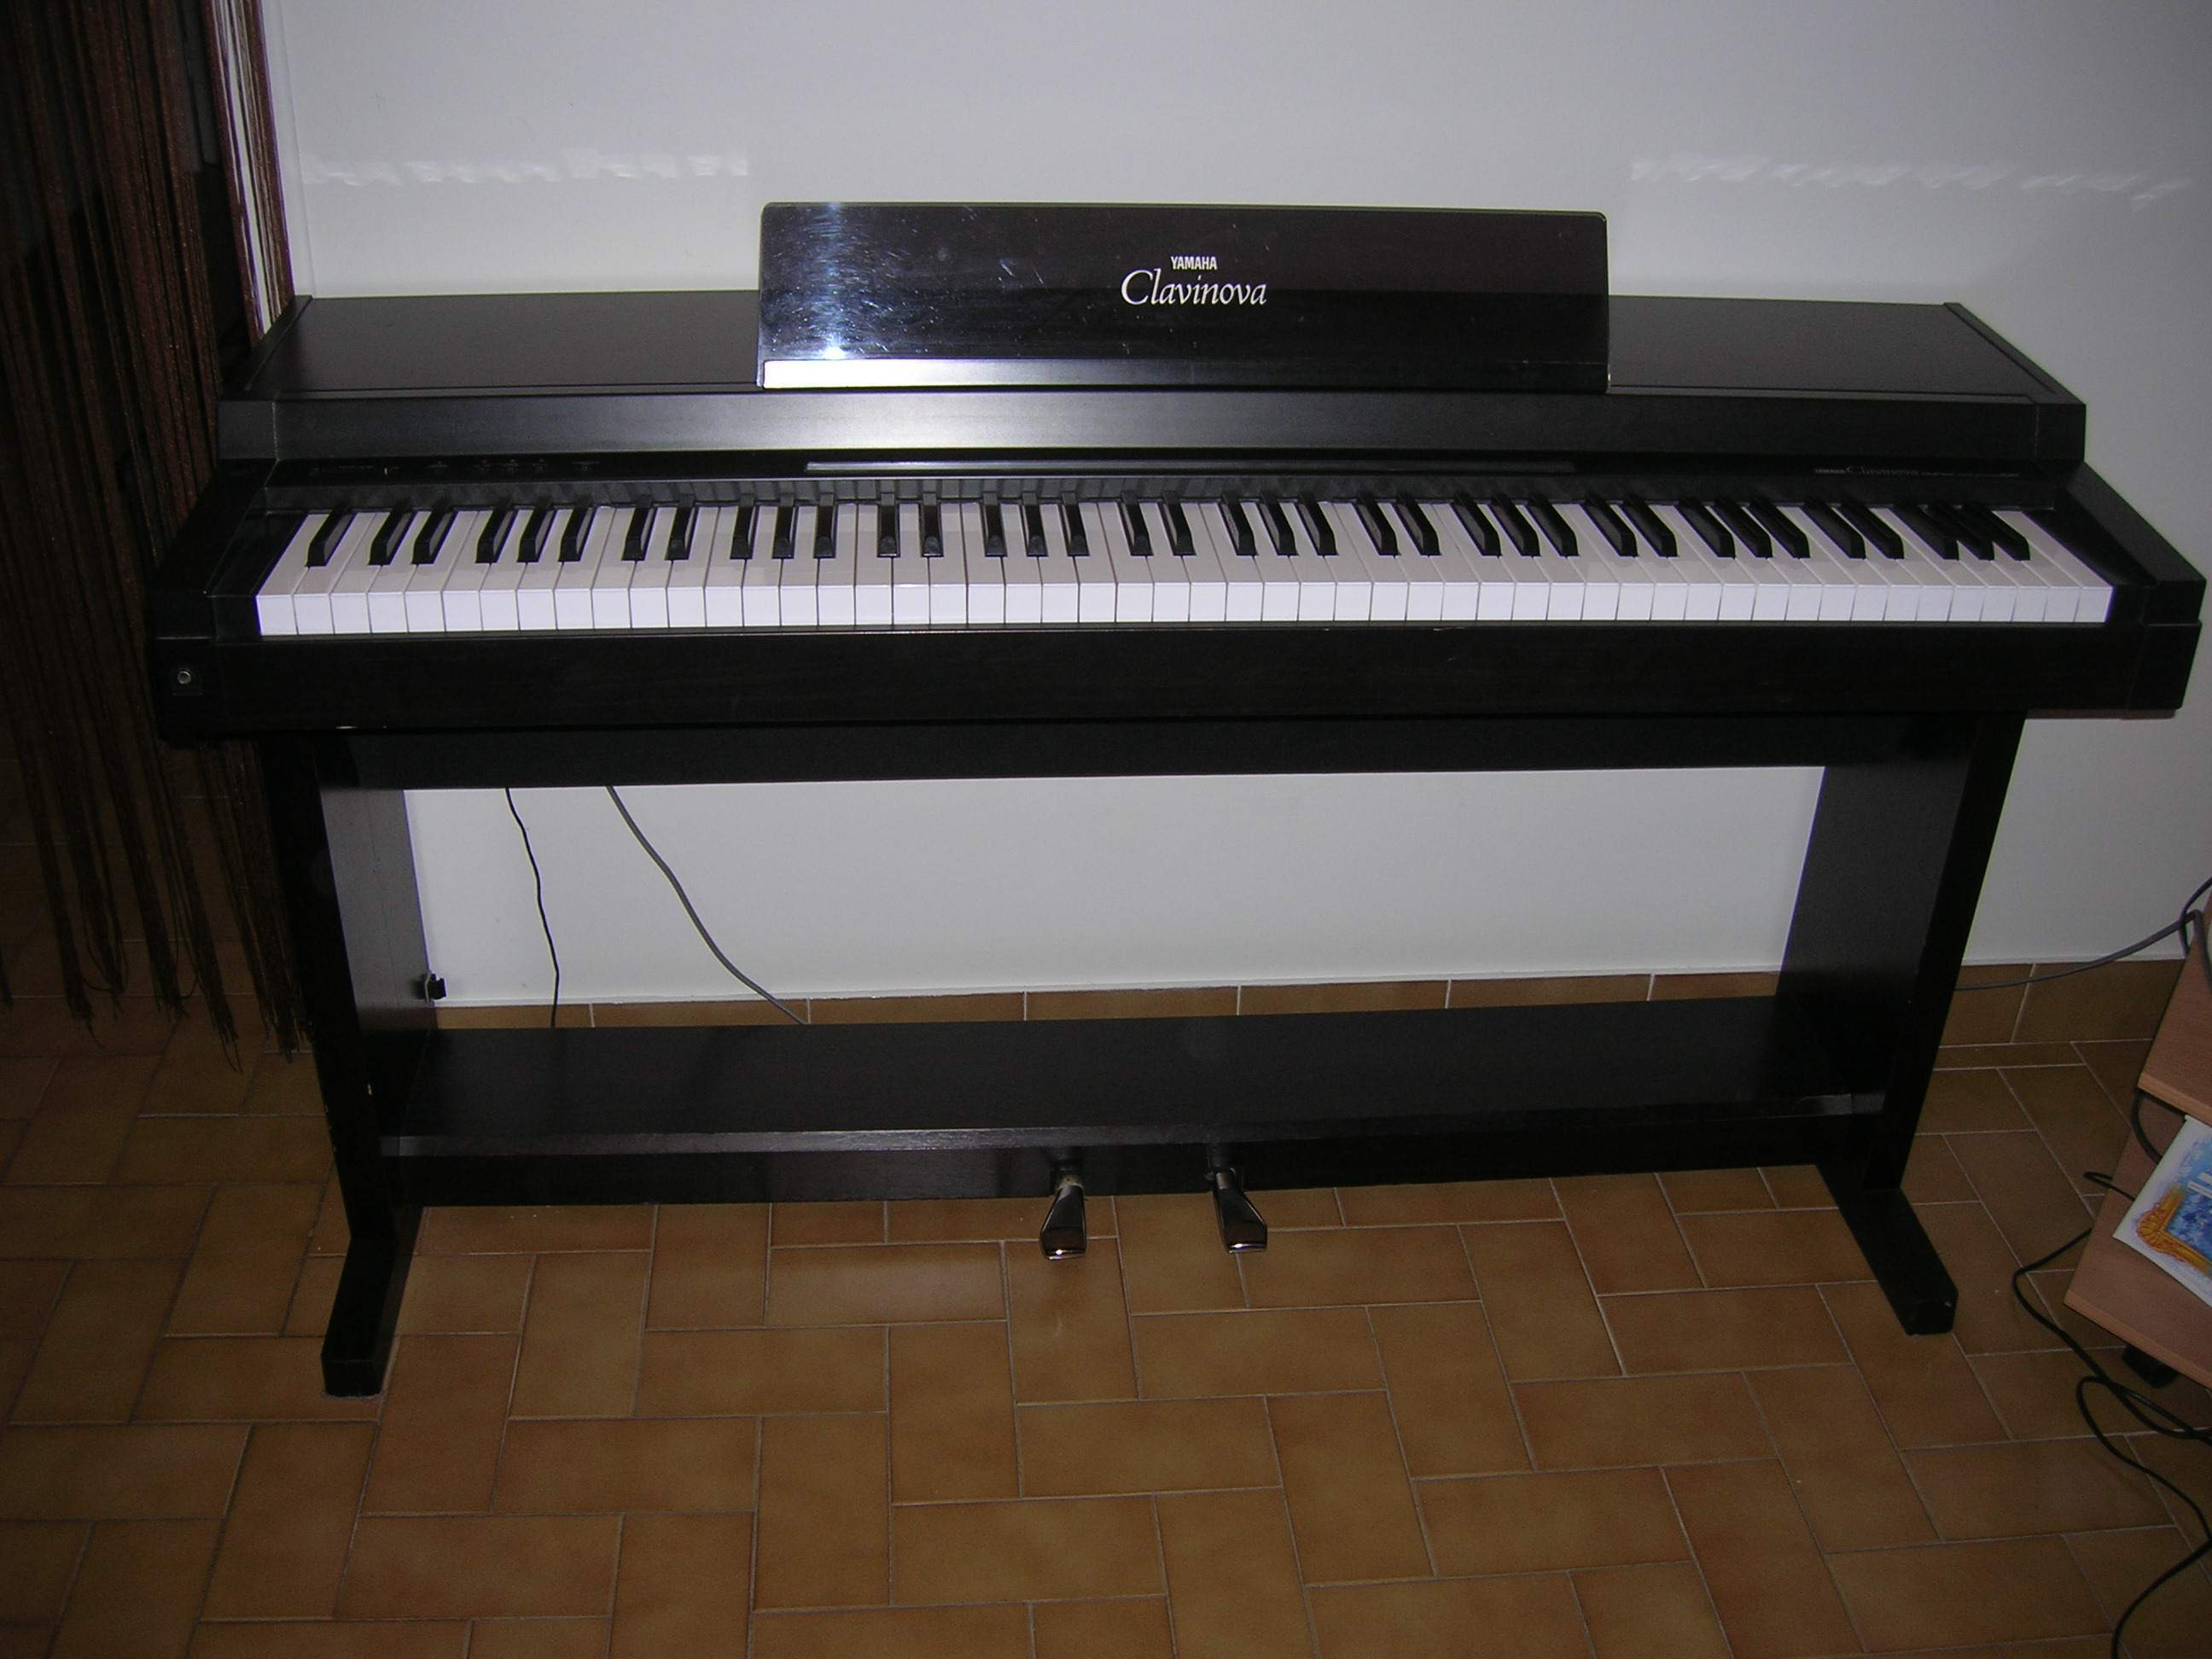 Yamaha clp 150 image 136574 audiofanzine for Yamaha clavinova price list